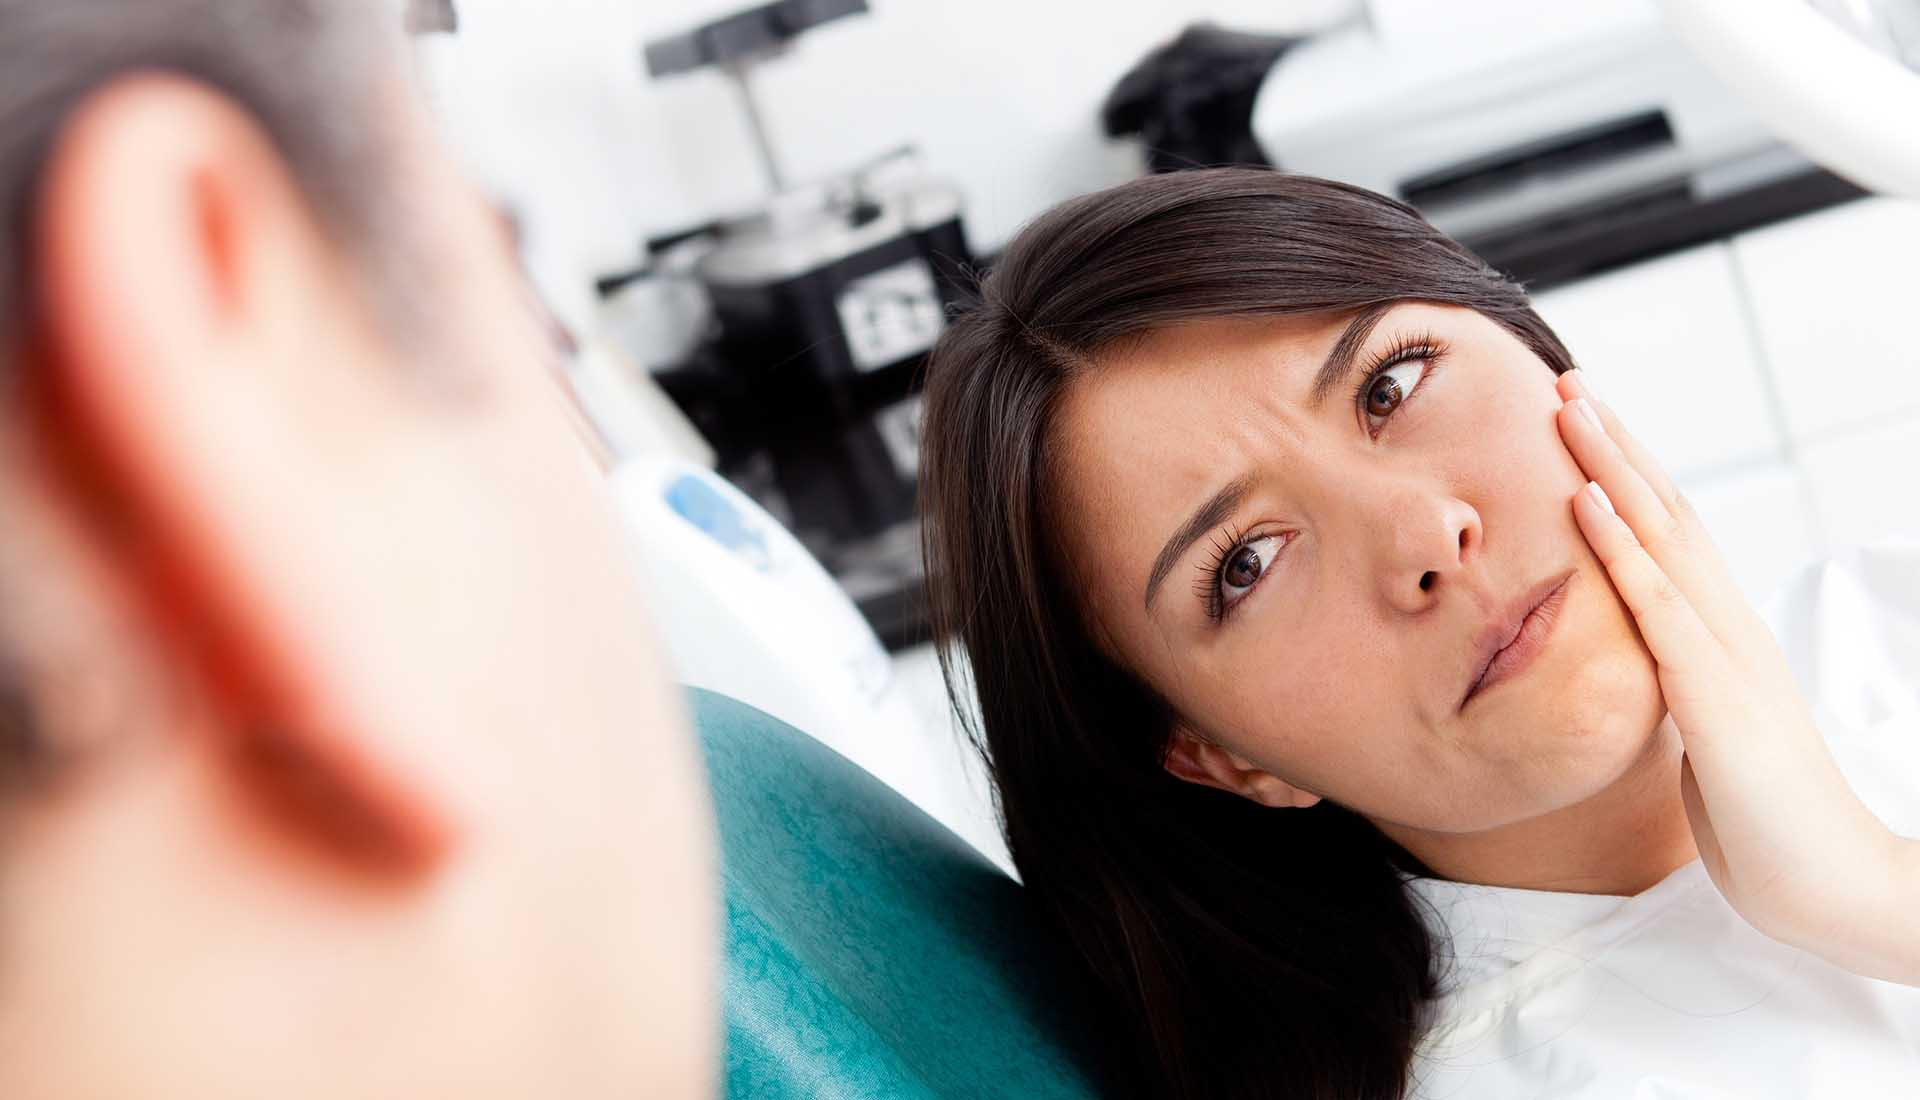 Woman at the dentist complaining about a tooth pain.